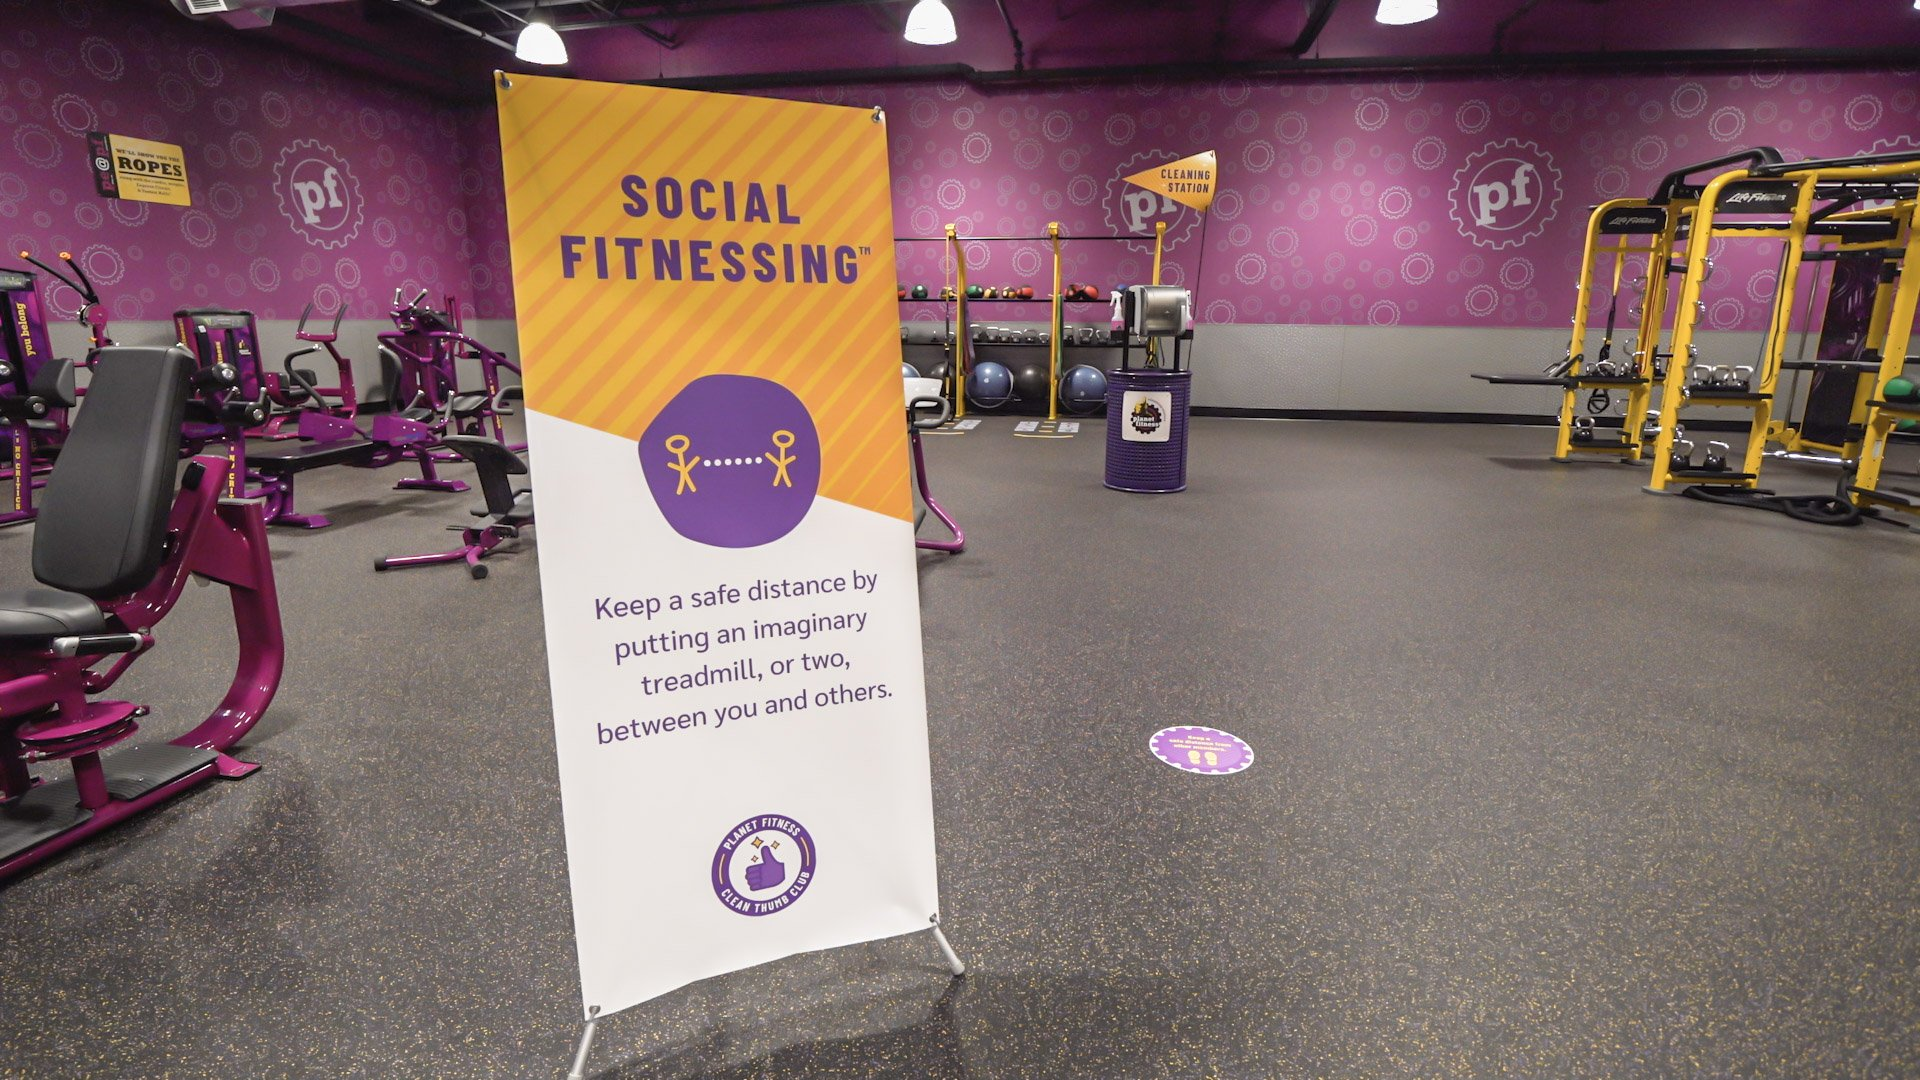 Planet Fitness To Reopen 6 Gyms In Central Pa Saturday June 13 Pennwatch